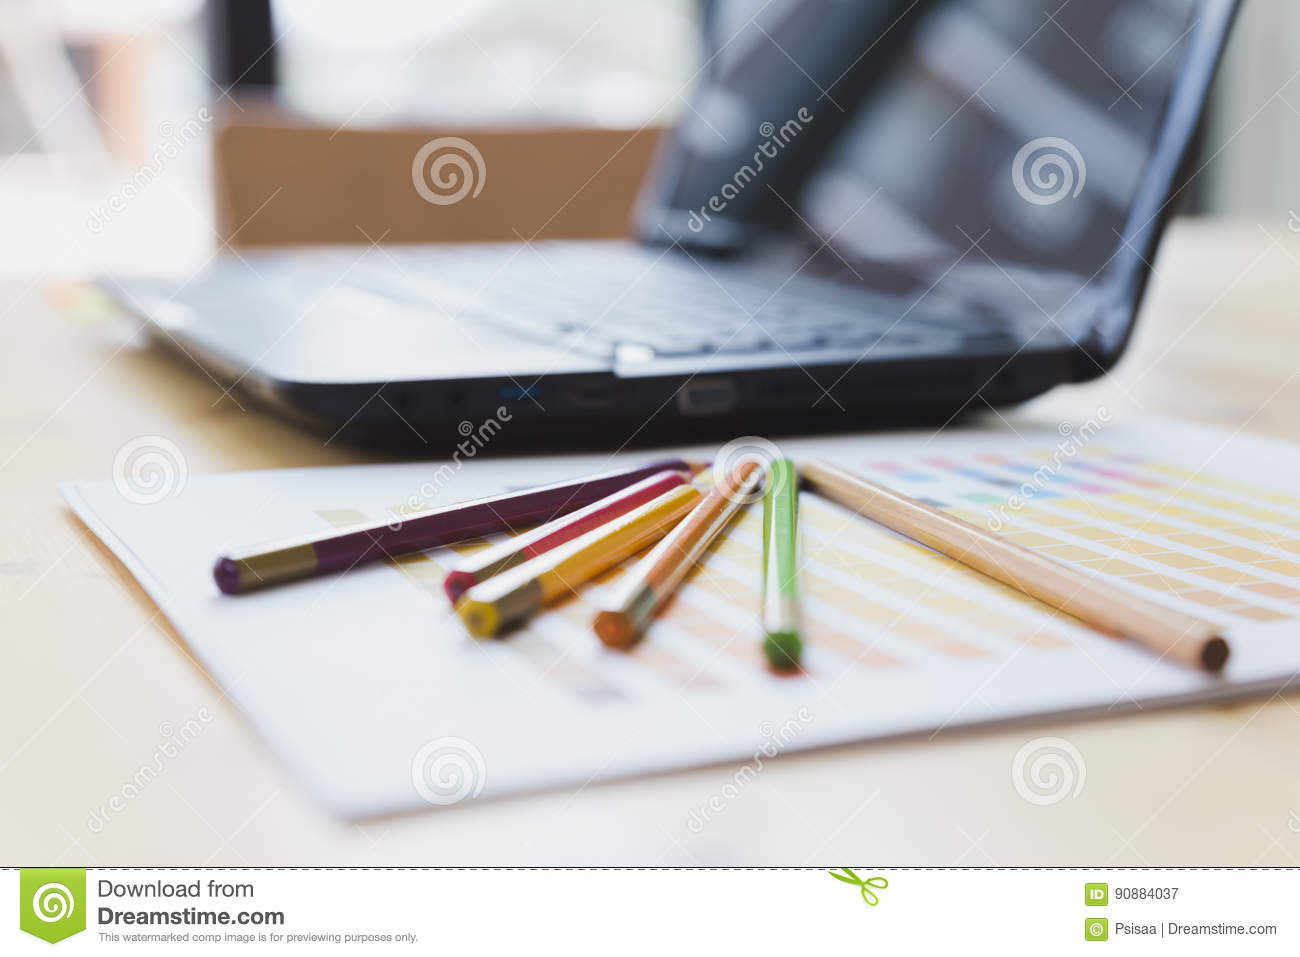 graphic designer desk table with computer, crayon and color guide palette swatches